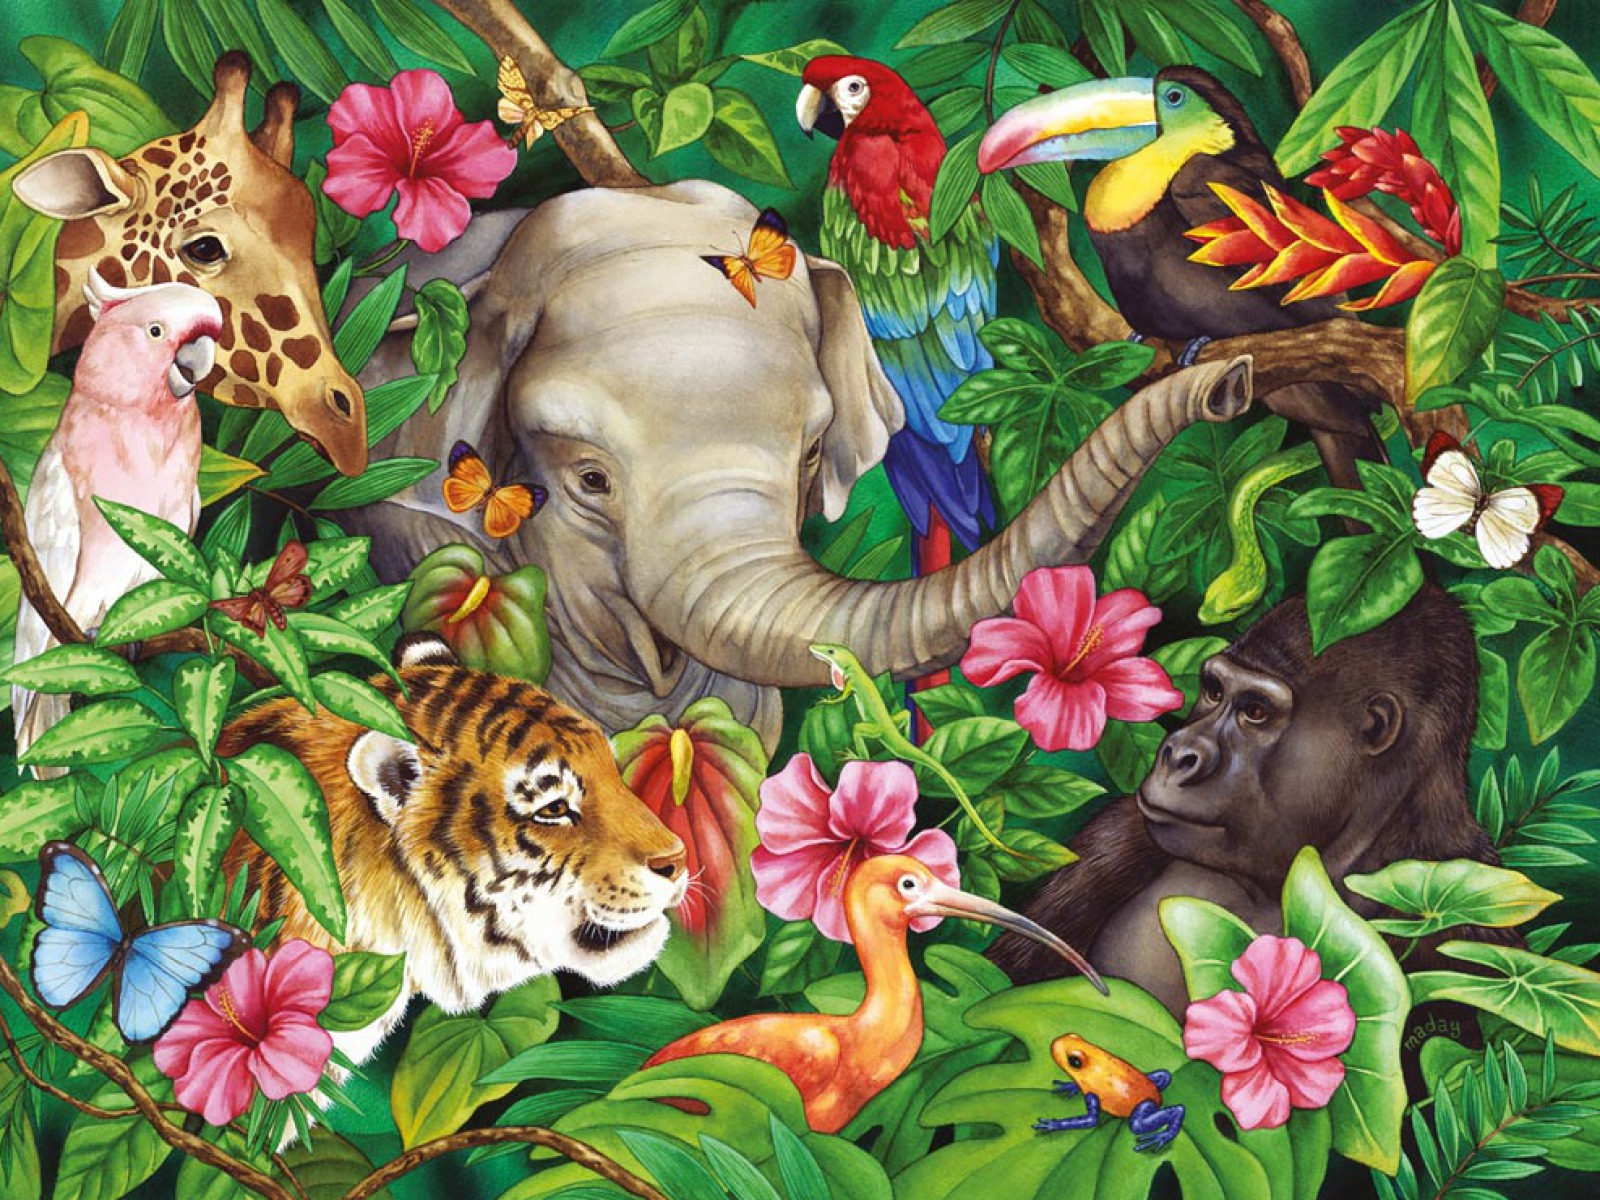 Wall Sticker Pictures Jungle Animal Wallpaper Wallpapersafari